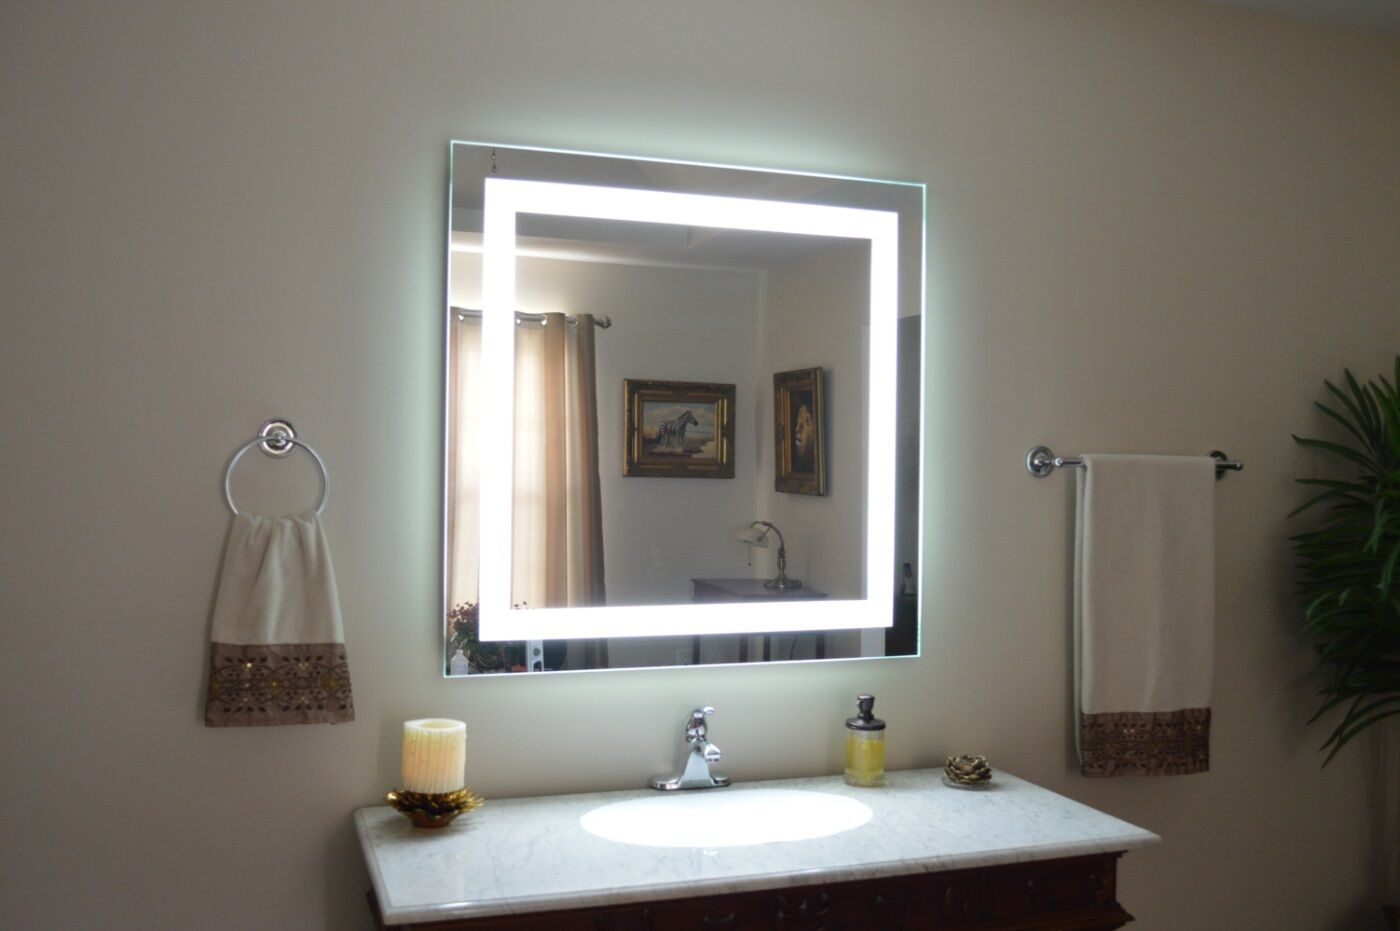 Lighted vanity mirror led lighted wall mounted 36 wide x 32 tall picture 1 of 3 aloadofball Choice Image